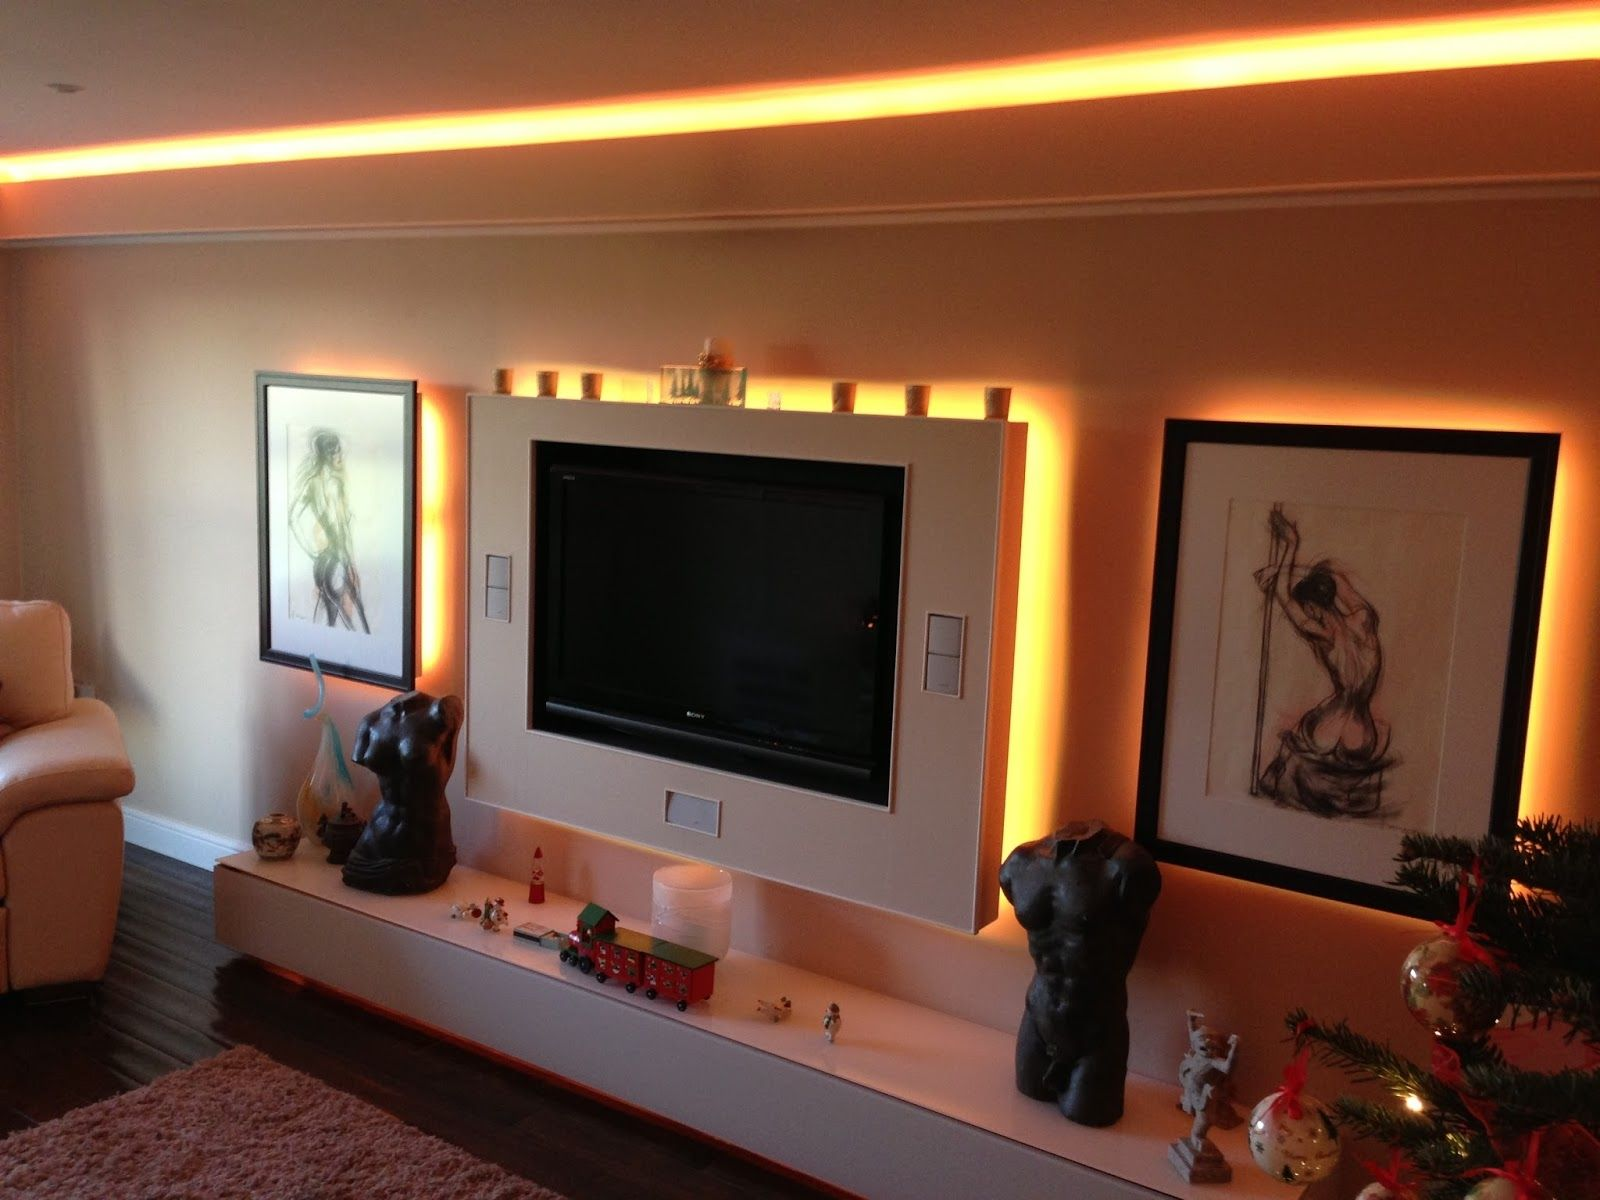 Led strip lighting home ideas httpscartclub pinterest led strip lighting home ideas mozeypictures Image collections